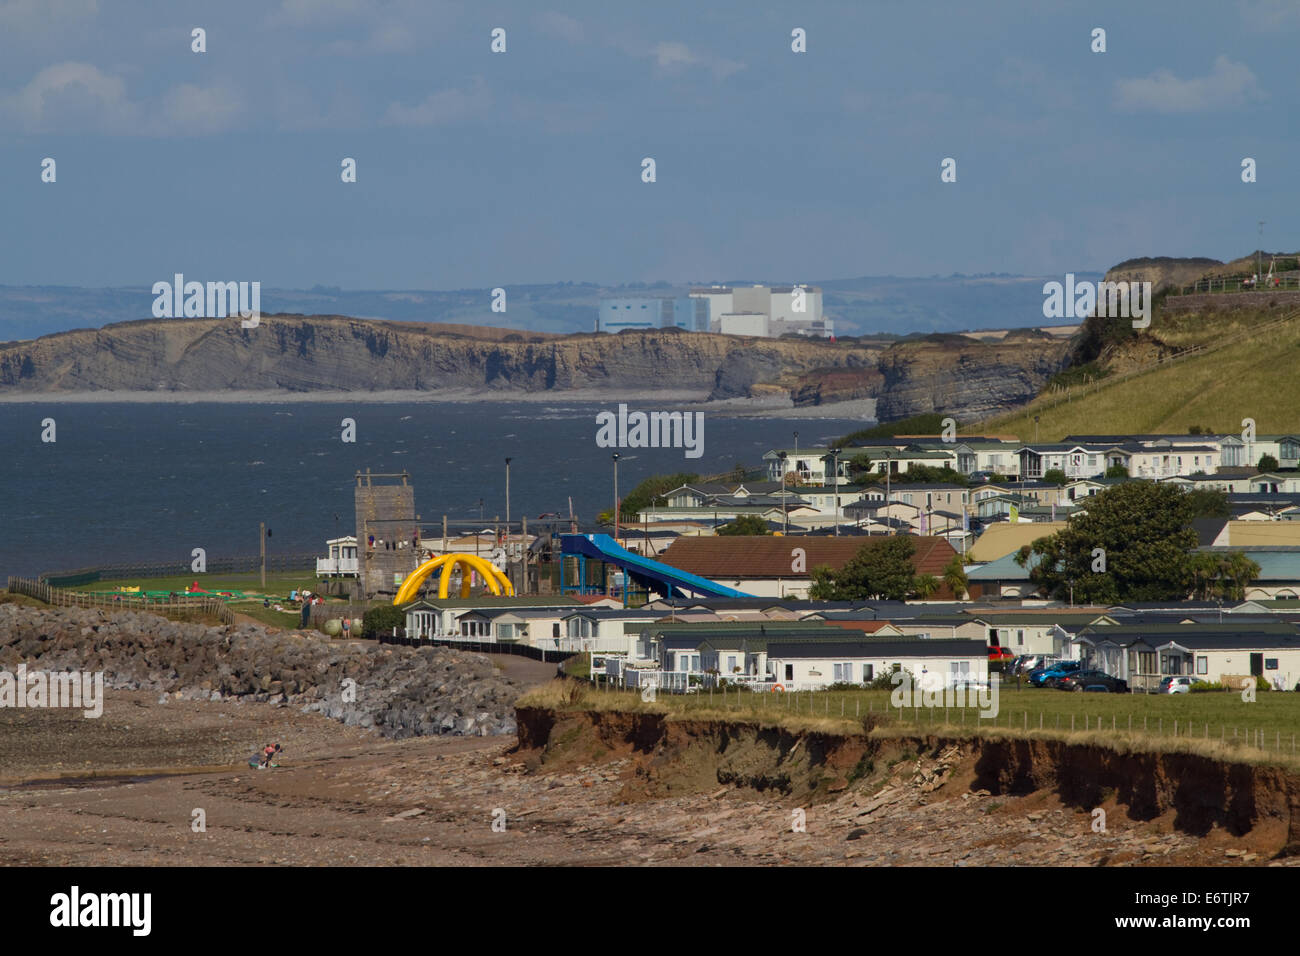 Caravan Park with Hinkley Point Nuclear Power Station in background. Bristol Channel. Somerset. UK - Stock Image